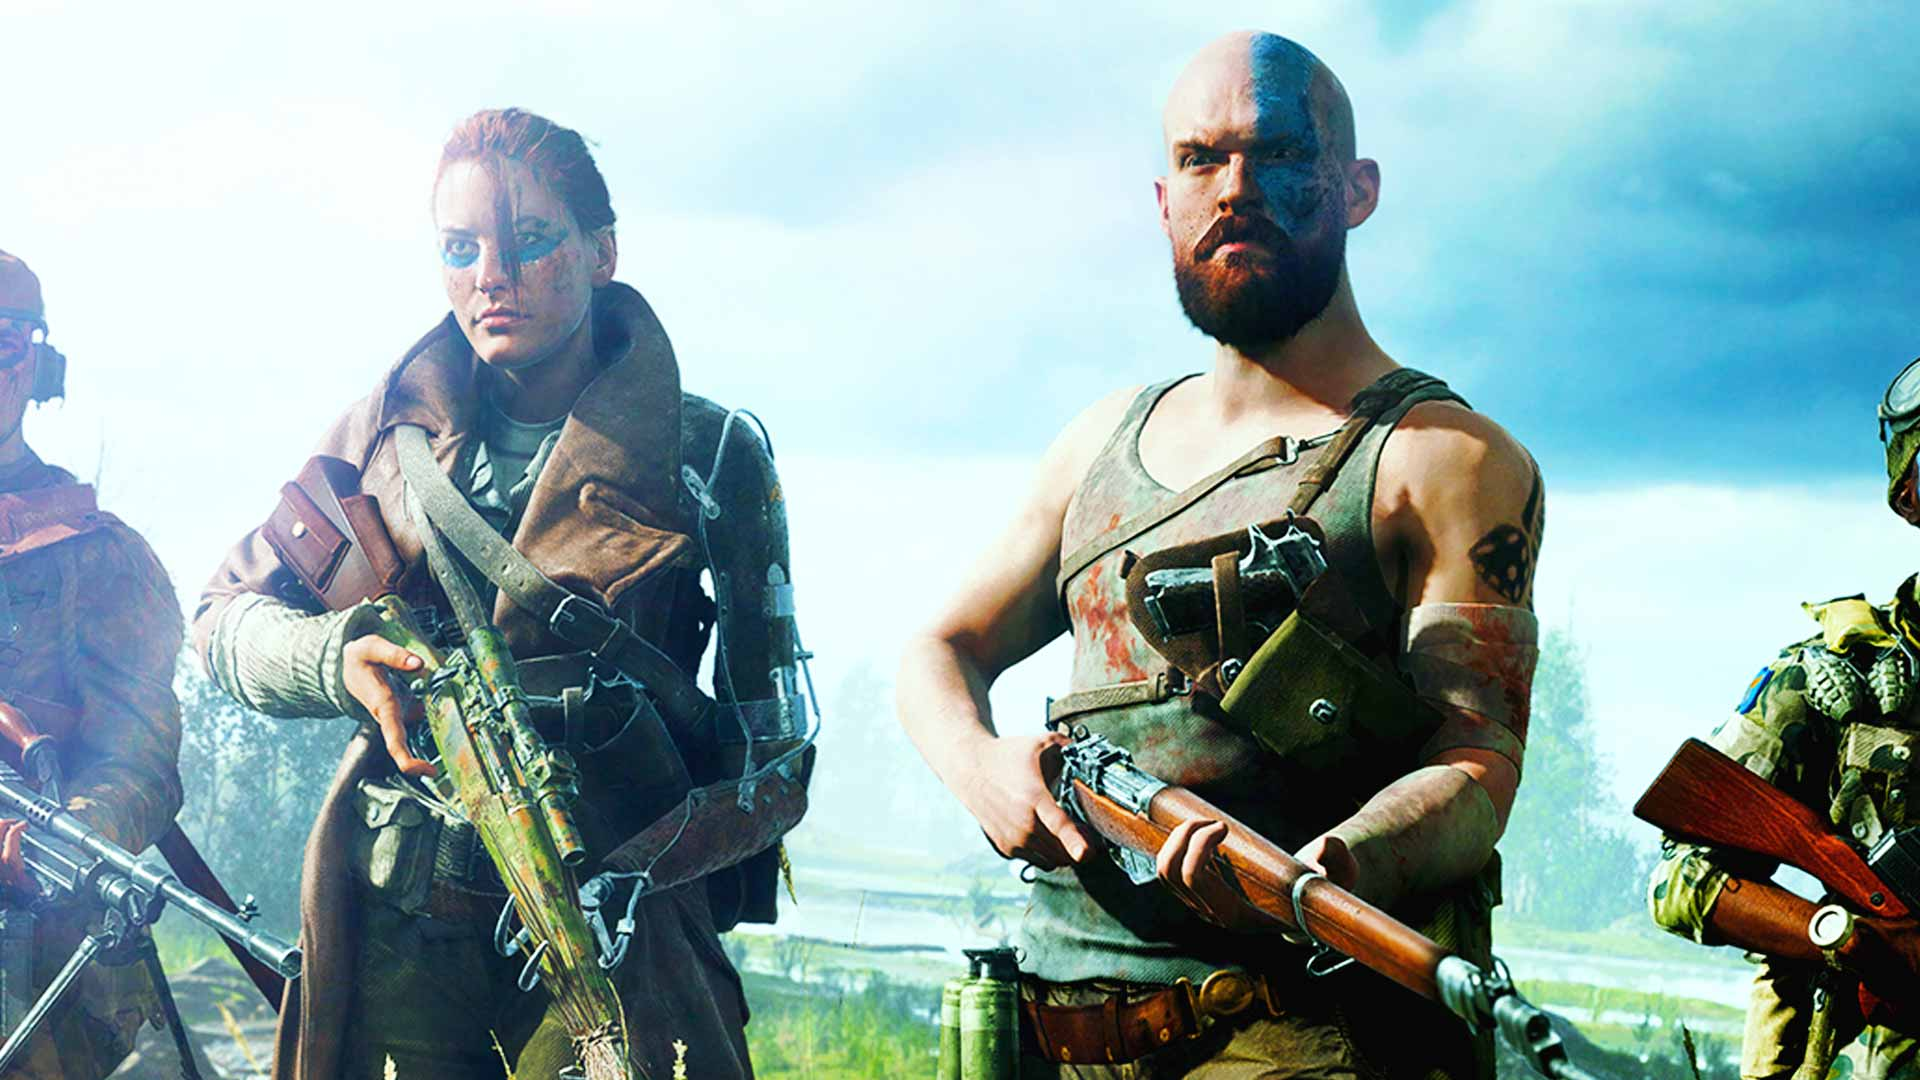 Need for Speed devs temporarily move to Battlefield 6 in latest EA studio shakeup